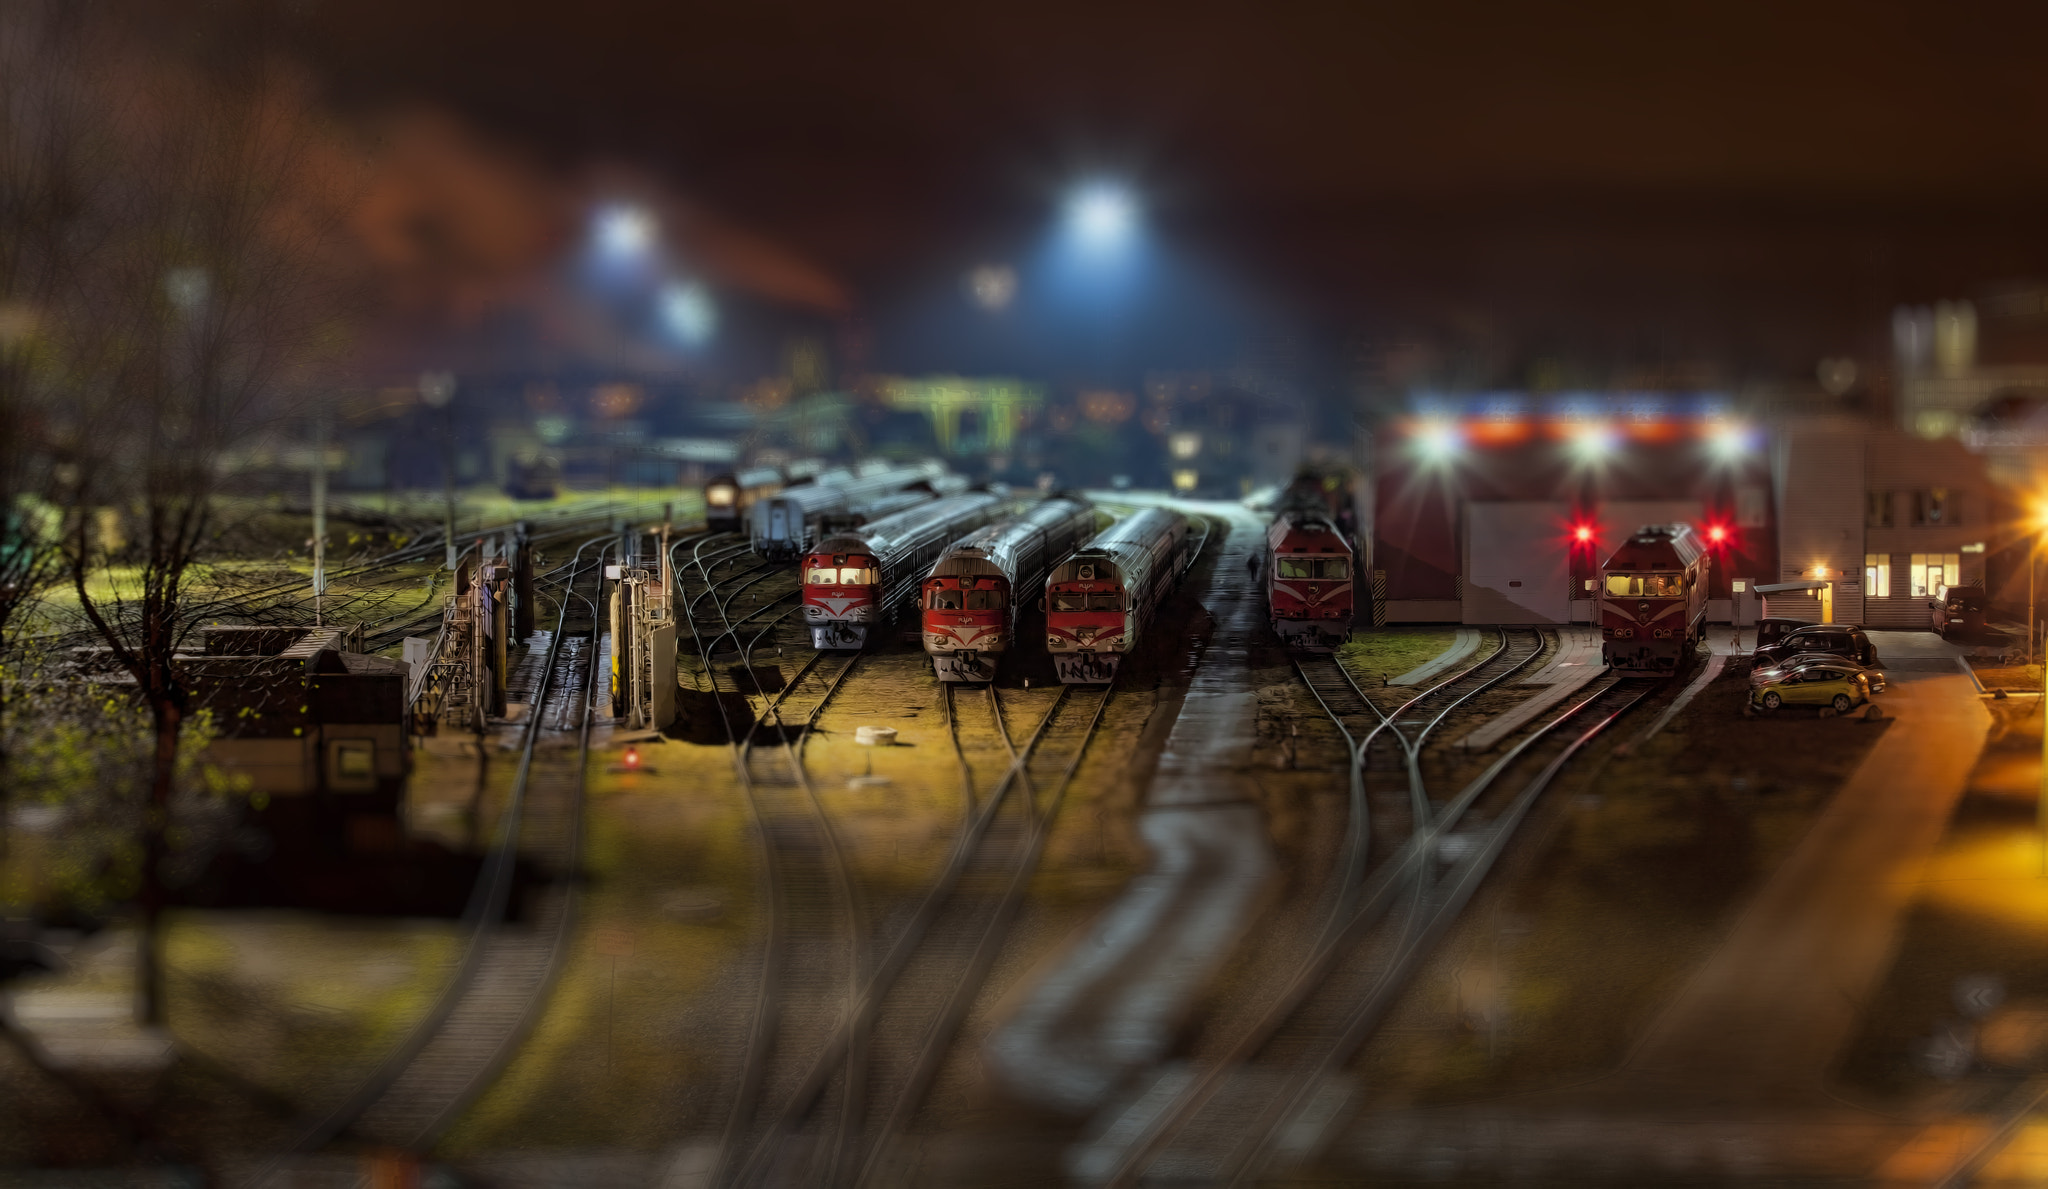 Photograph Toy Trains by Laimonas Ciūnys on 500px